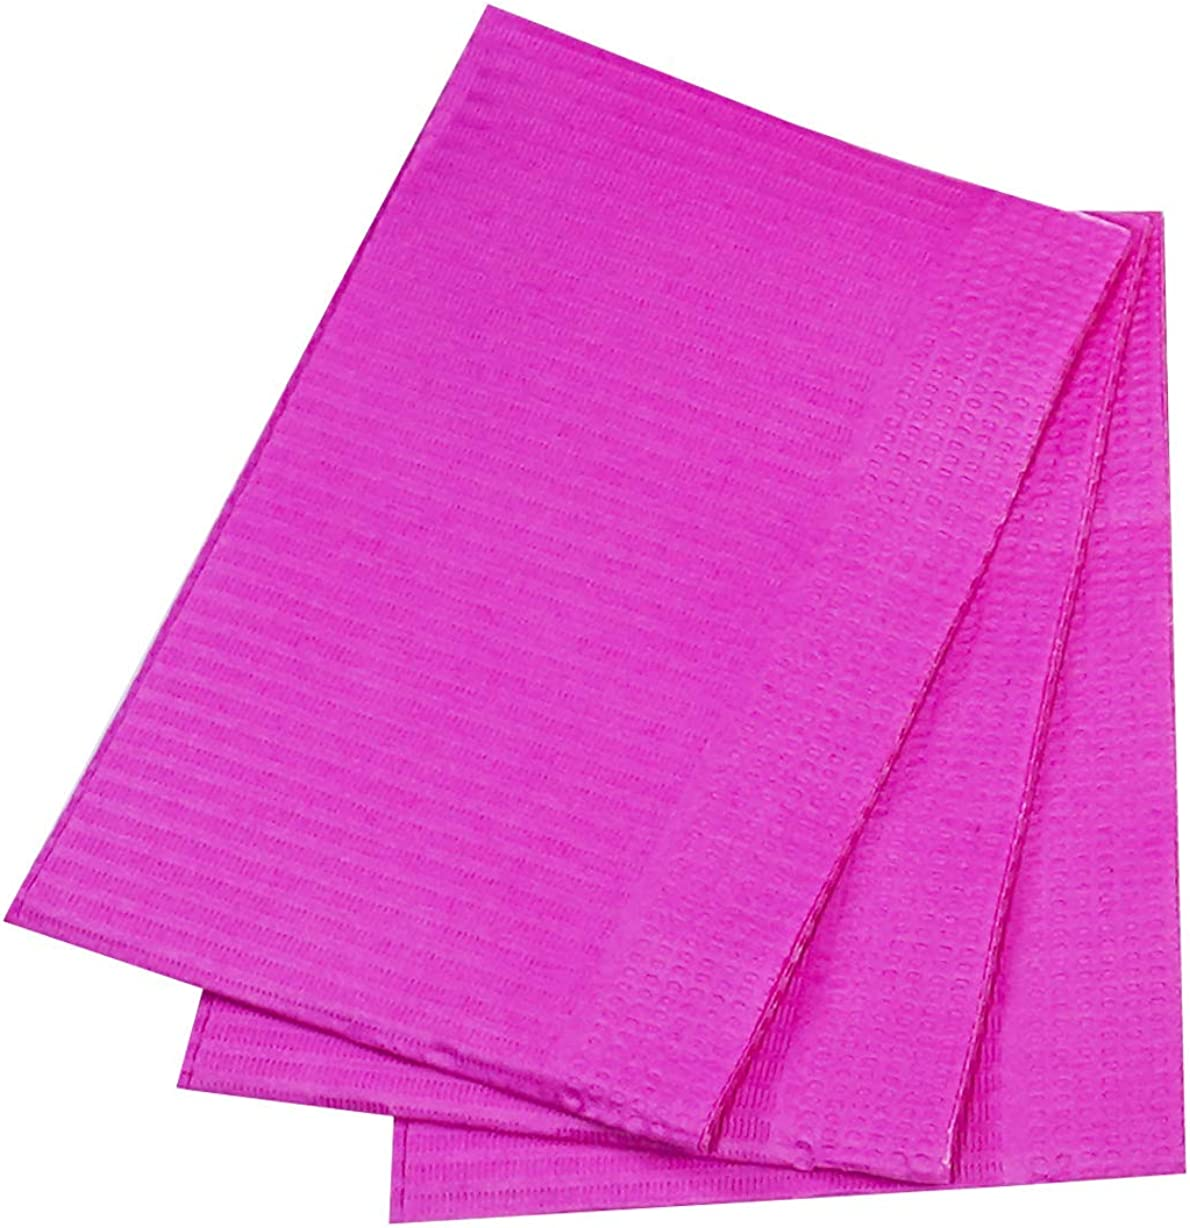 "50 Fuchsia Disposable Dental Bibs 13"" x 18"" Tattoo Piercing Waterproof Patient: Clothing"